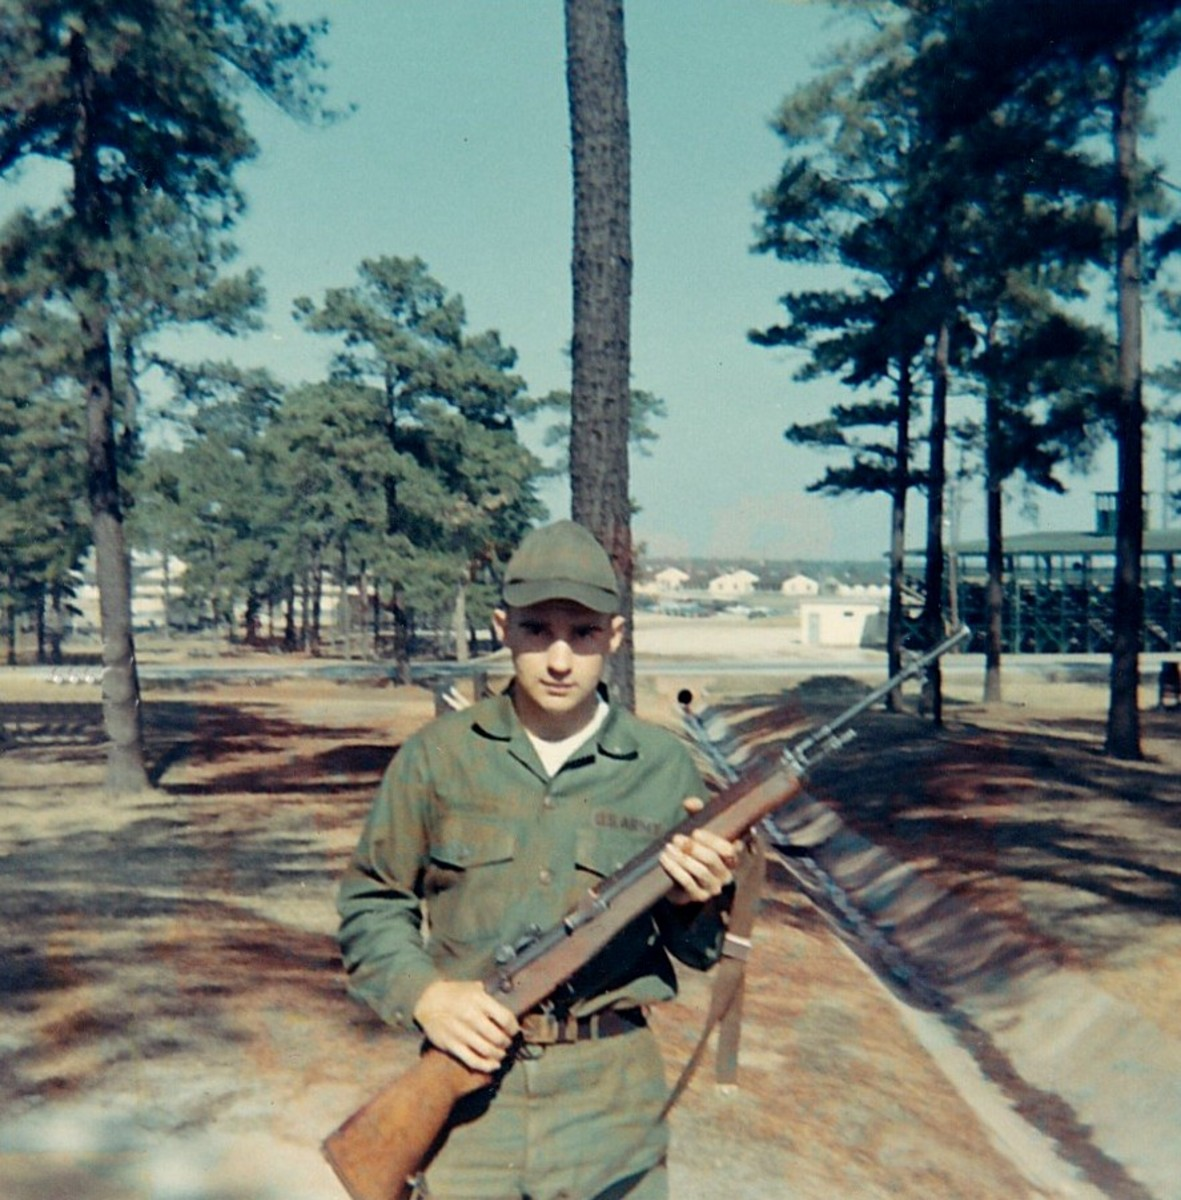 My brother, taken in Fort Jackson, SC during basic training.